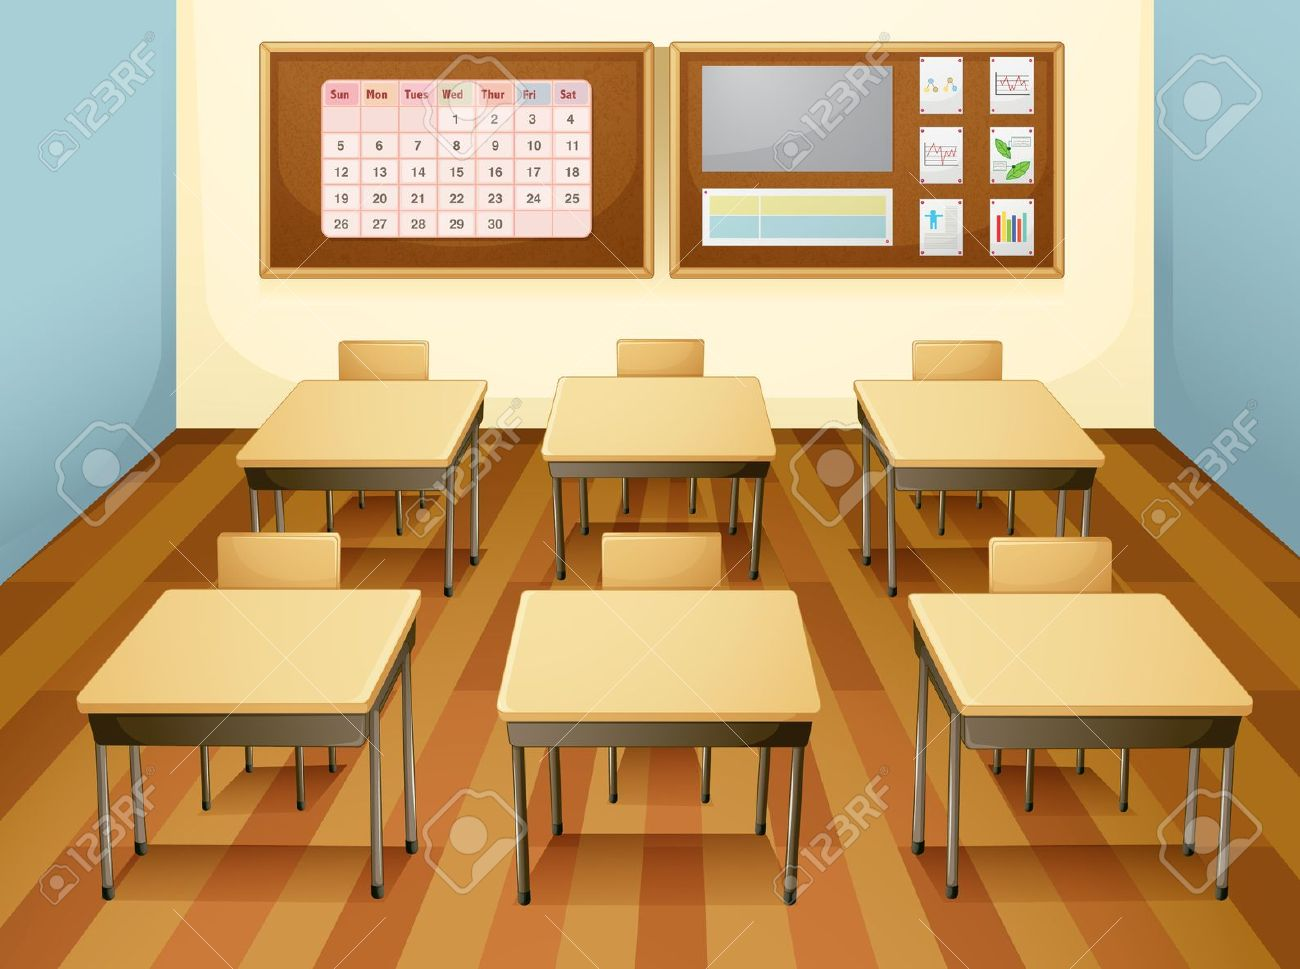 Classroom Table And Chairs unique classroom table and chairs clipart school desk chair